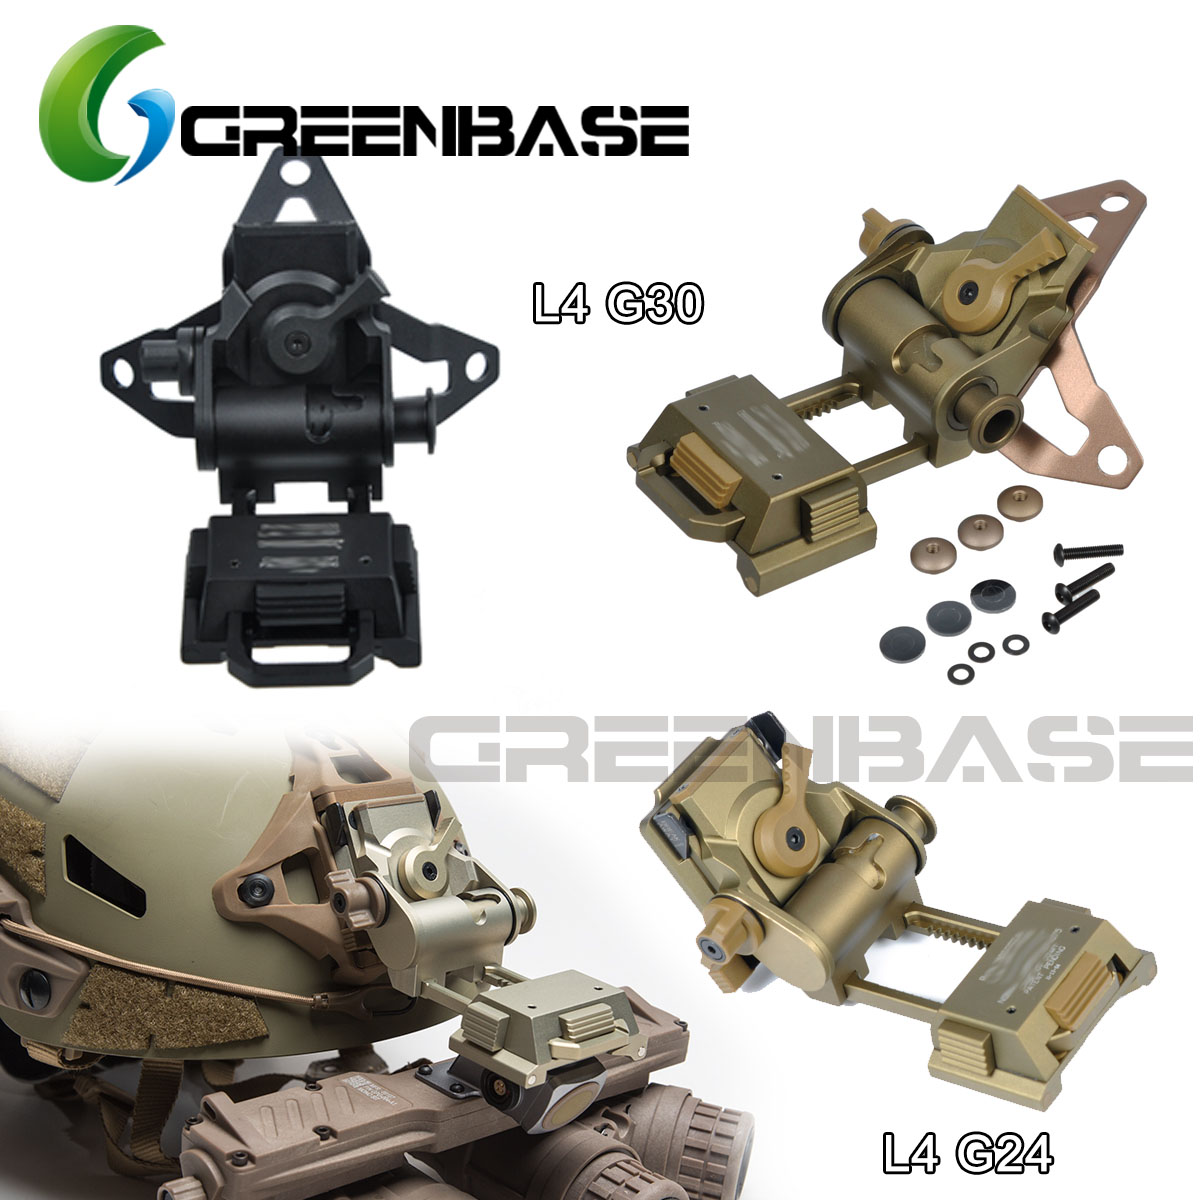 Clear Inventory Aluminum L4 G24 G30 Helmet Mount NVG Night Vision Fast OPS Helmet Parts NVG